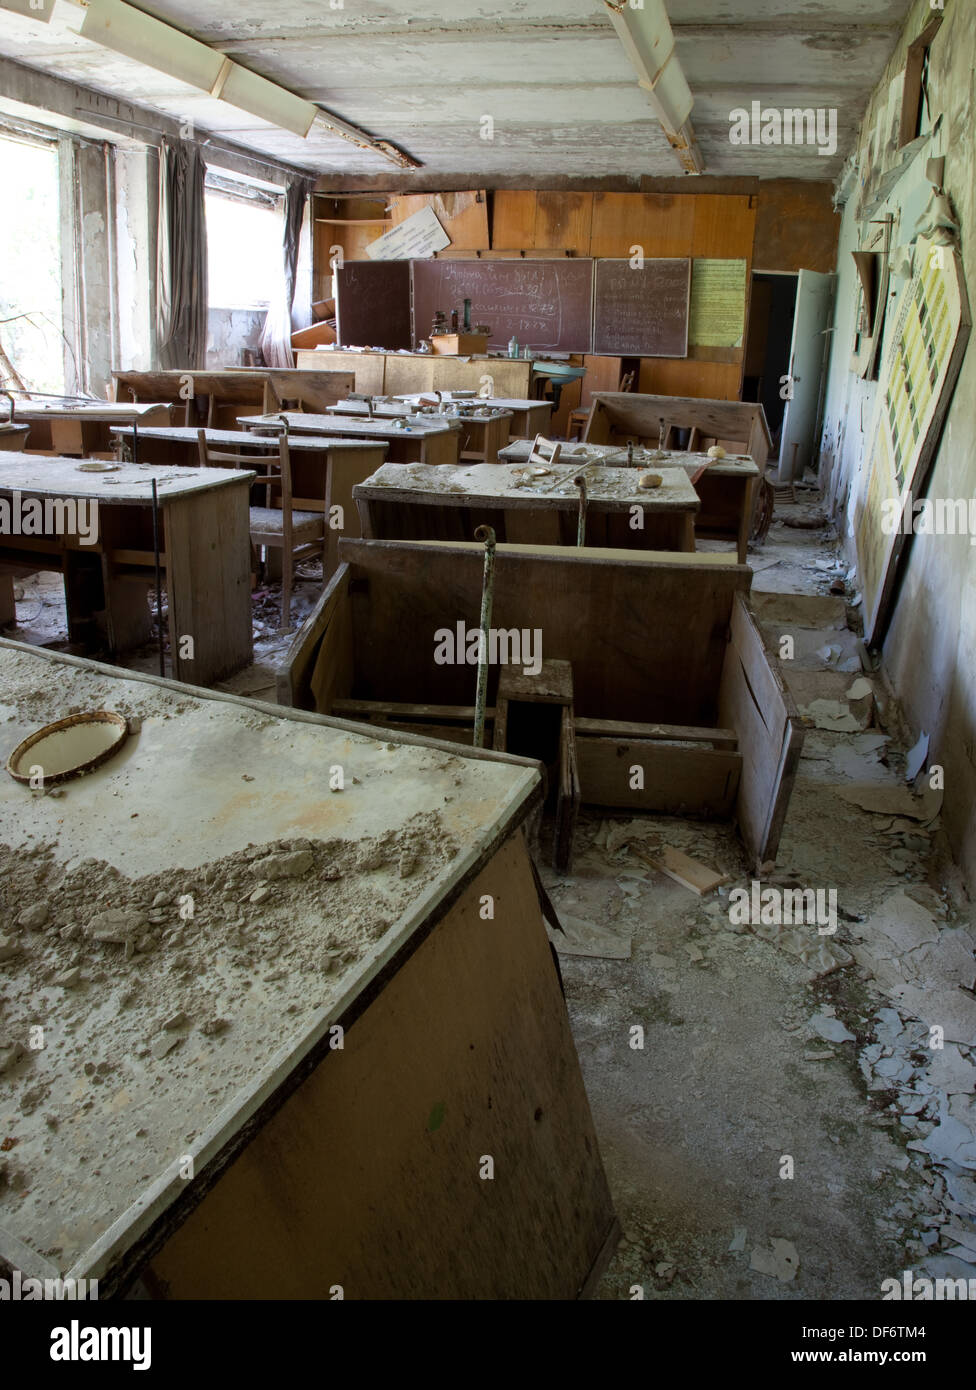 Abandoned classroom in the ghost town of Pripyat, Ukraine - Stock Image